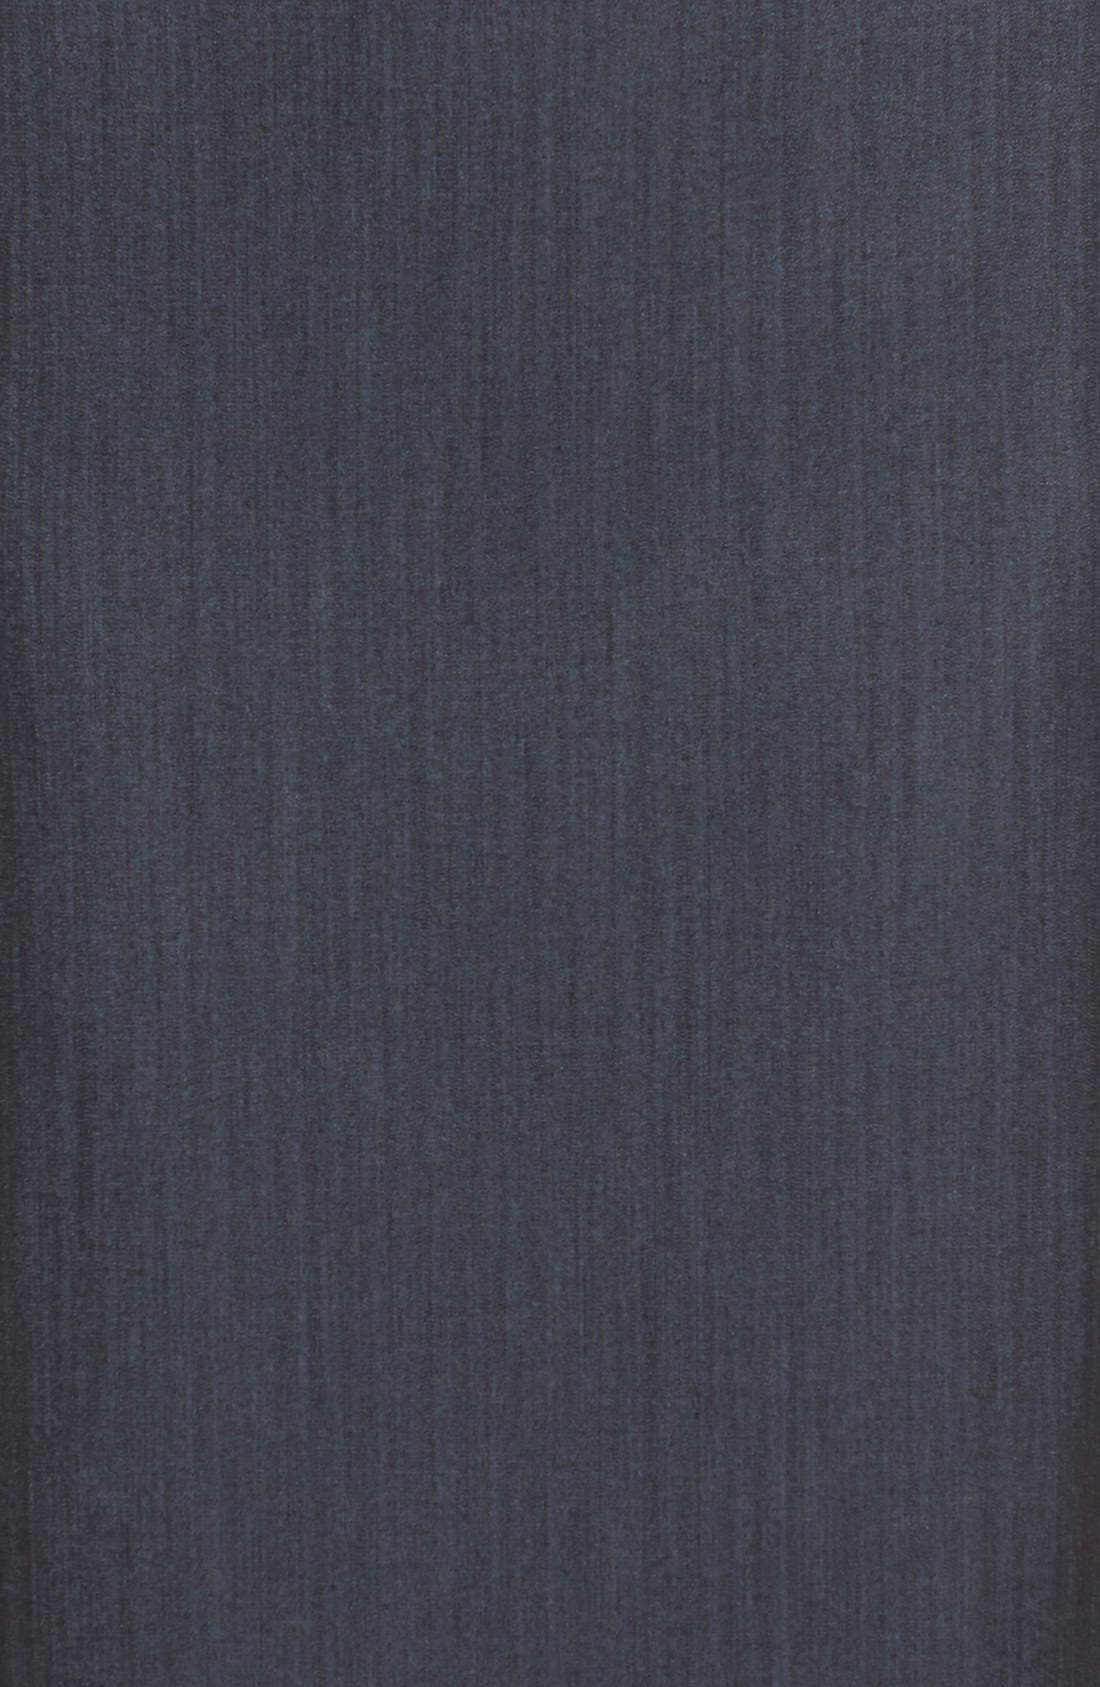 ANNE KLEIN,                             Stretch Woven Suit Skirt,                             Alternate thumbnail 6, color,                             INDIGO TWILL